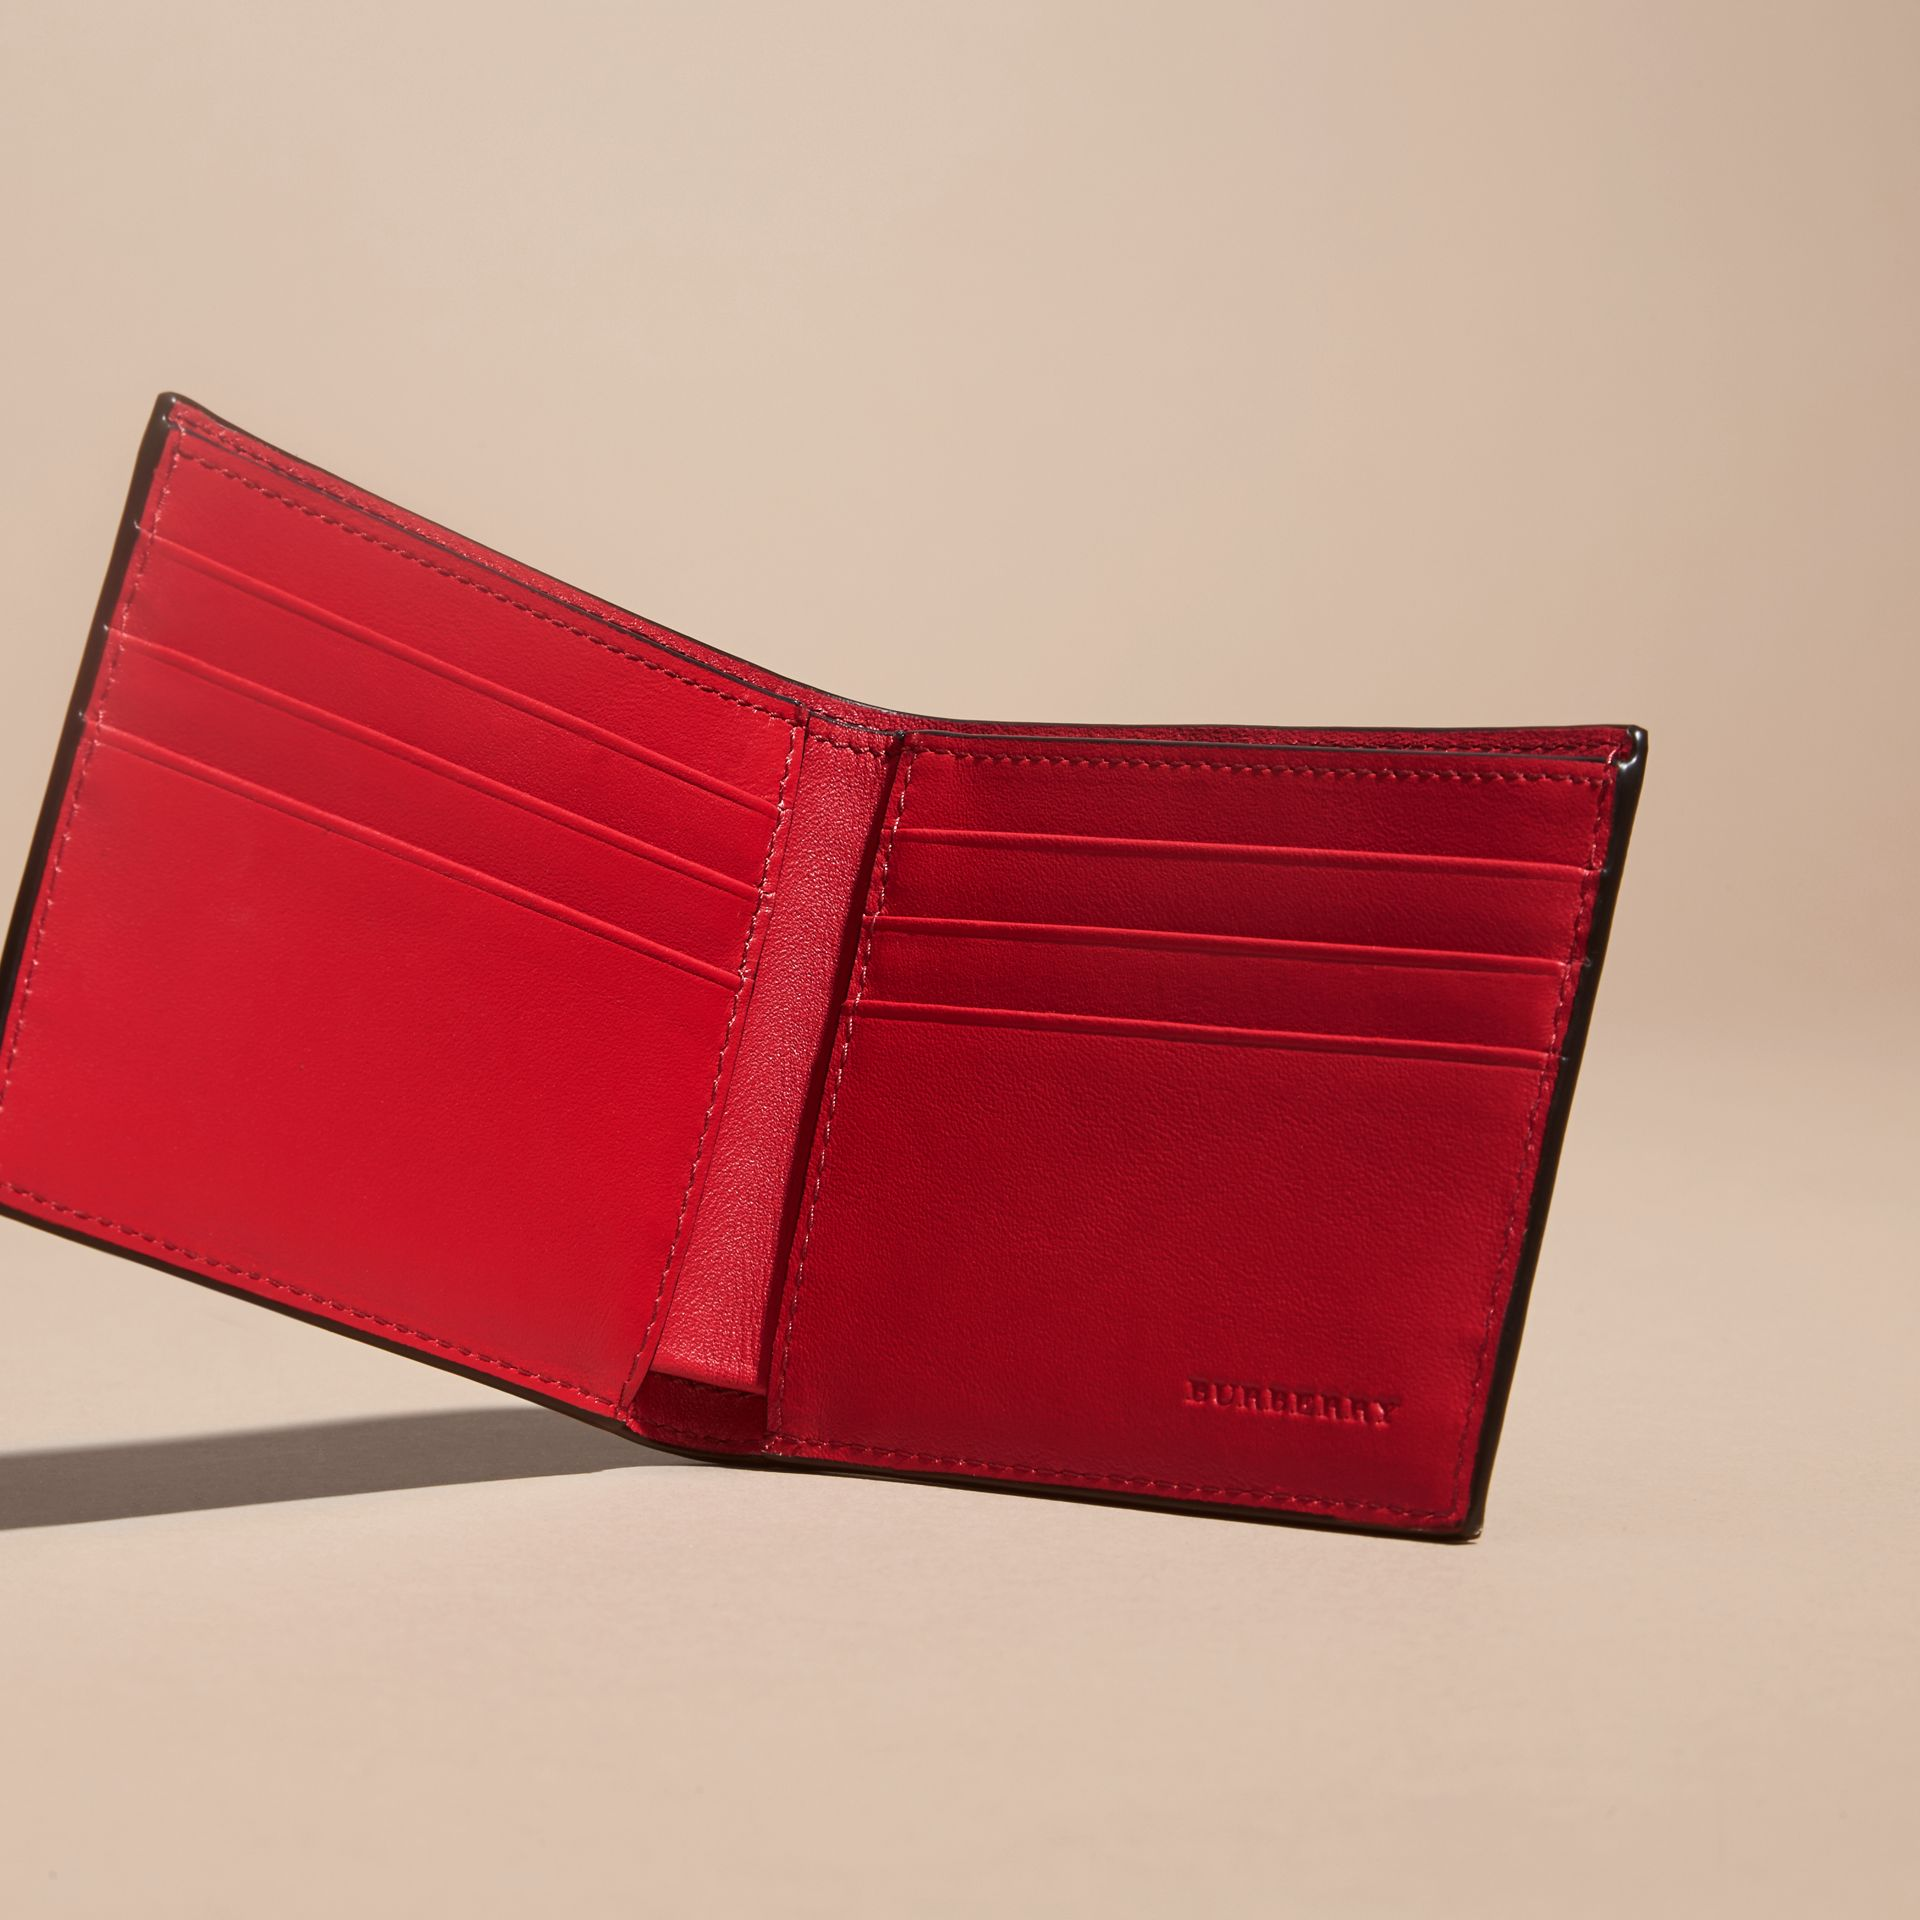 London Check and Leather Bifold Wallet in Parade Red - Men | Burberry - gallery image 5